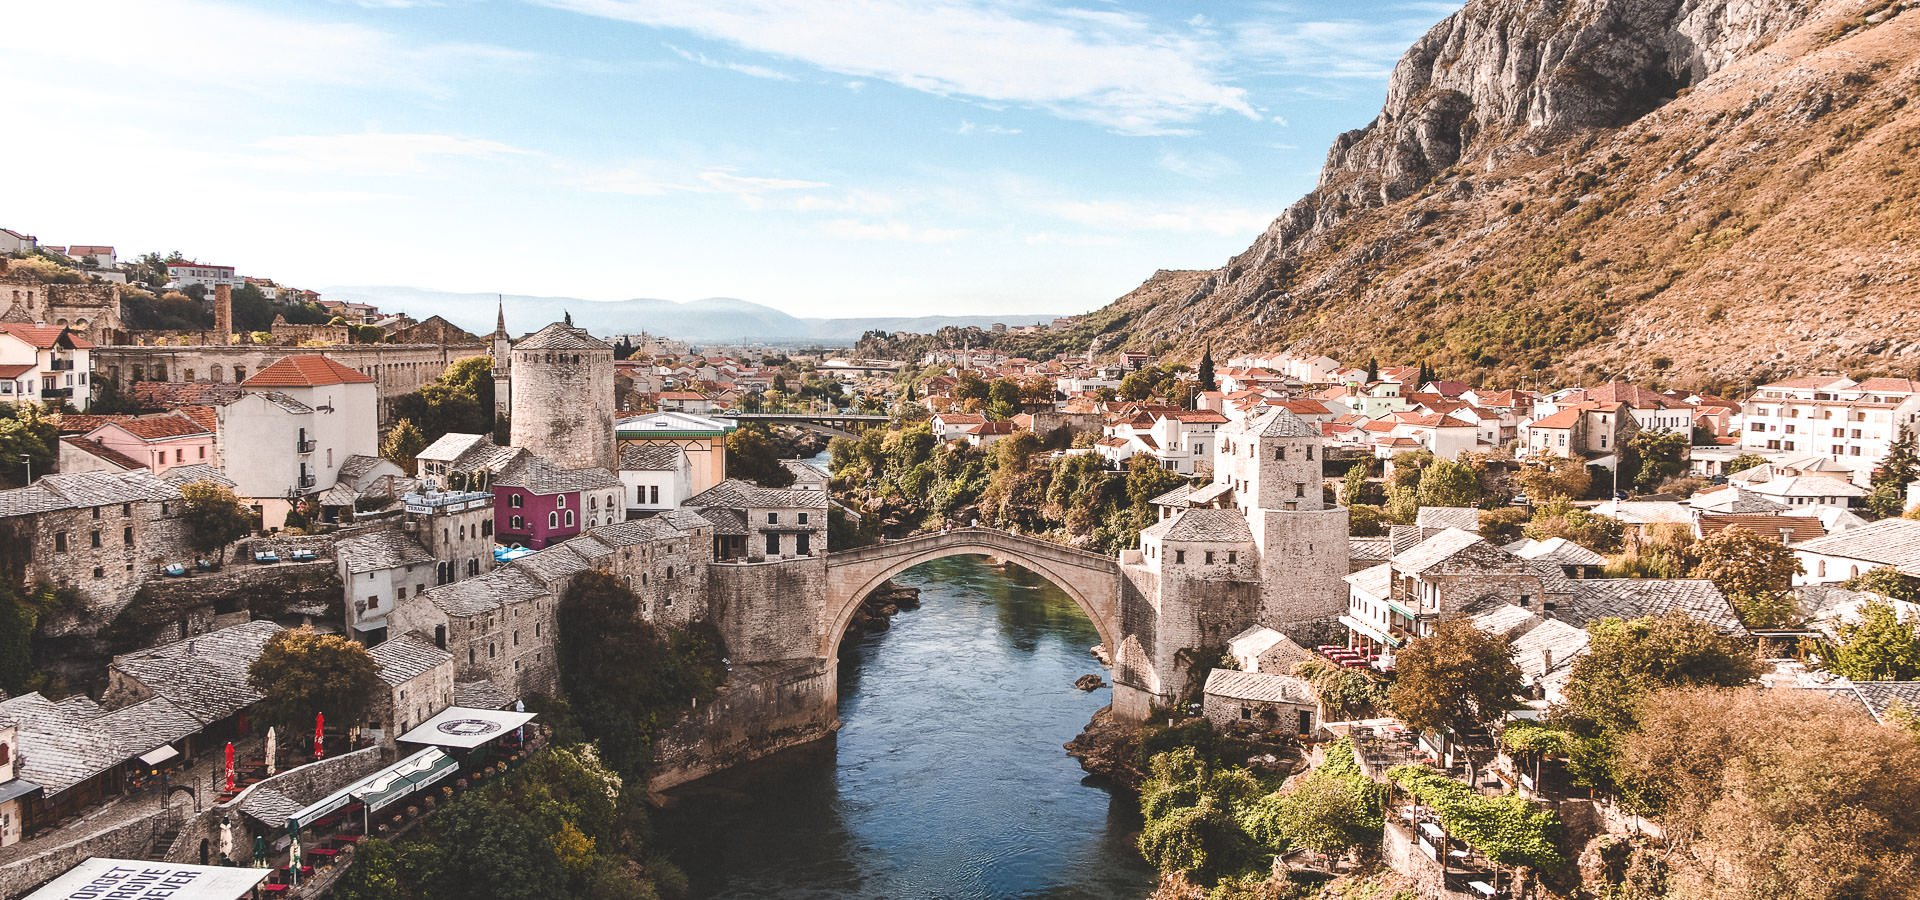 24 Hours in Mostar, Bosnia and Herzegovina | 24 hours in mostar 4